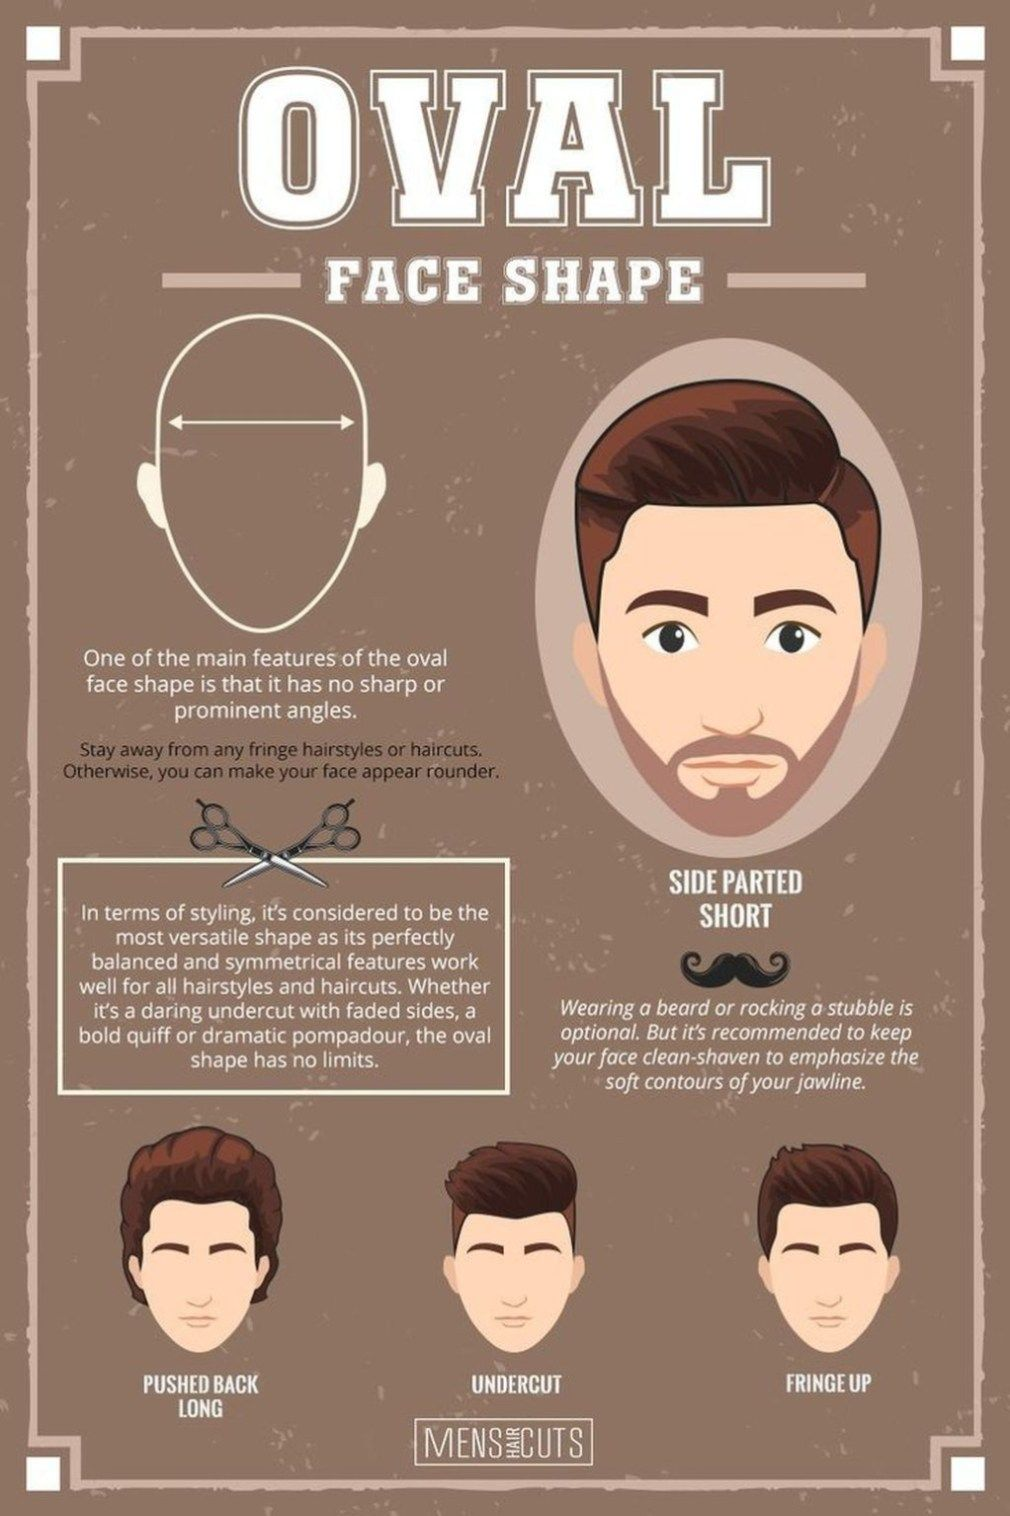 Amazing Male Hair Styles That Match With Your Face Shapes09 Oval Face Haircuts Oval Face Hairstyles Male Face Shapes